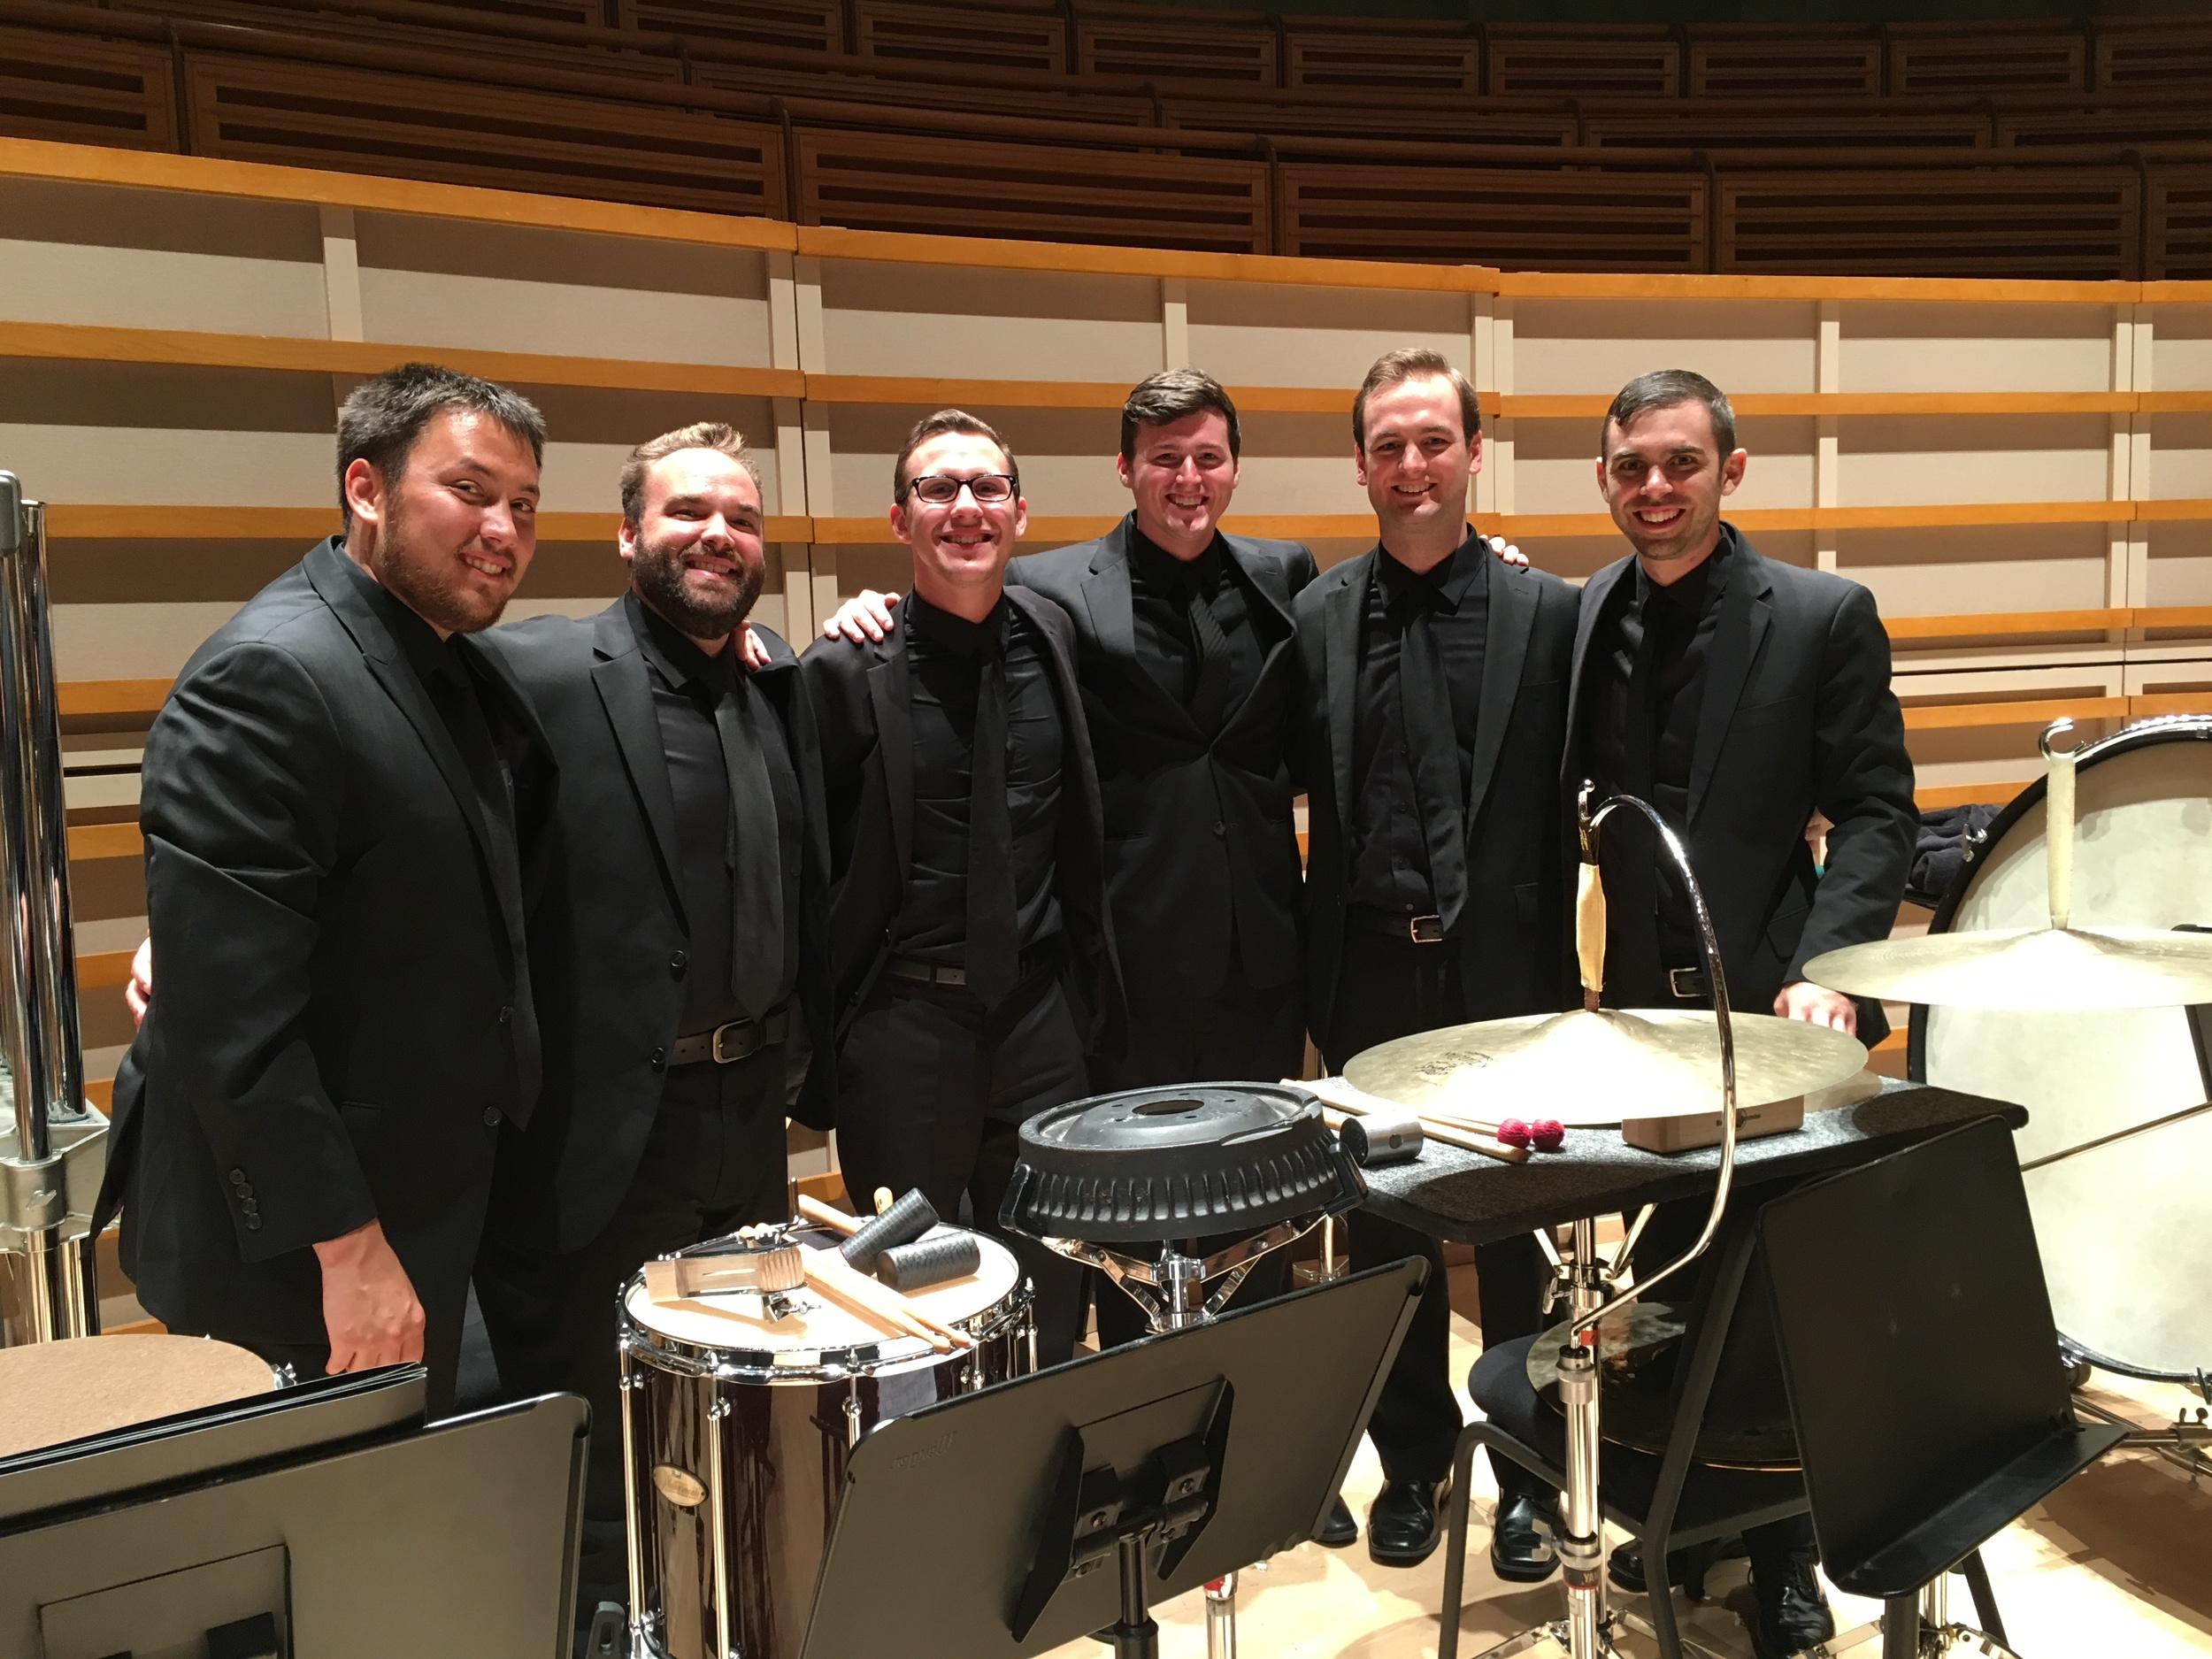 New World Percussion Section after playing Copland's Third Symphony.  Matt Howard, myself, Brad Loudis, Stephen Kehner, Alex Wadner, and Dan Morris.